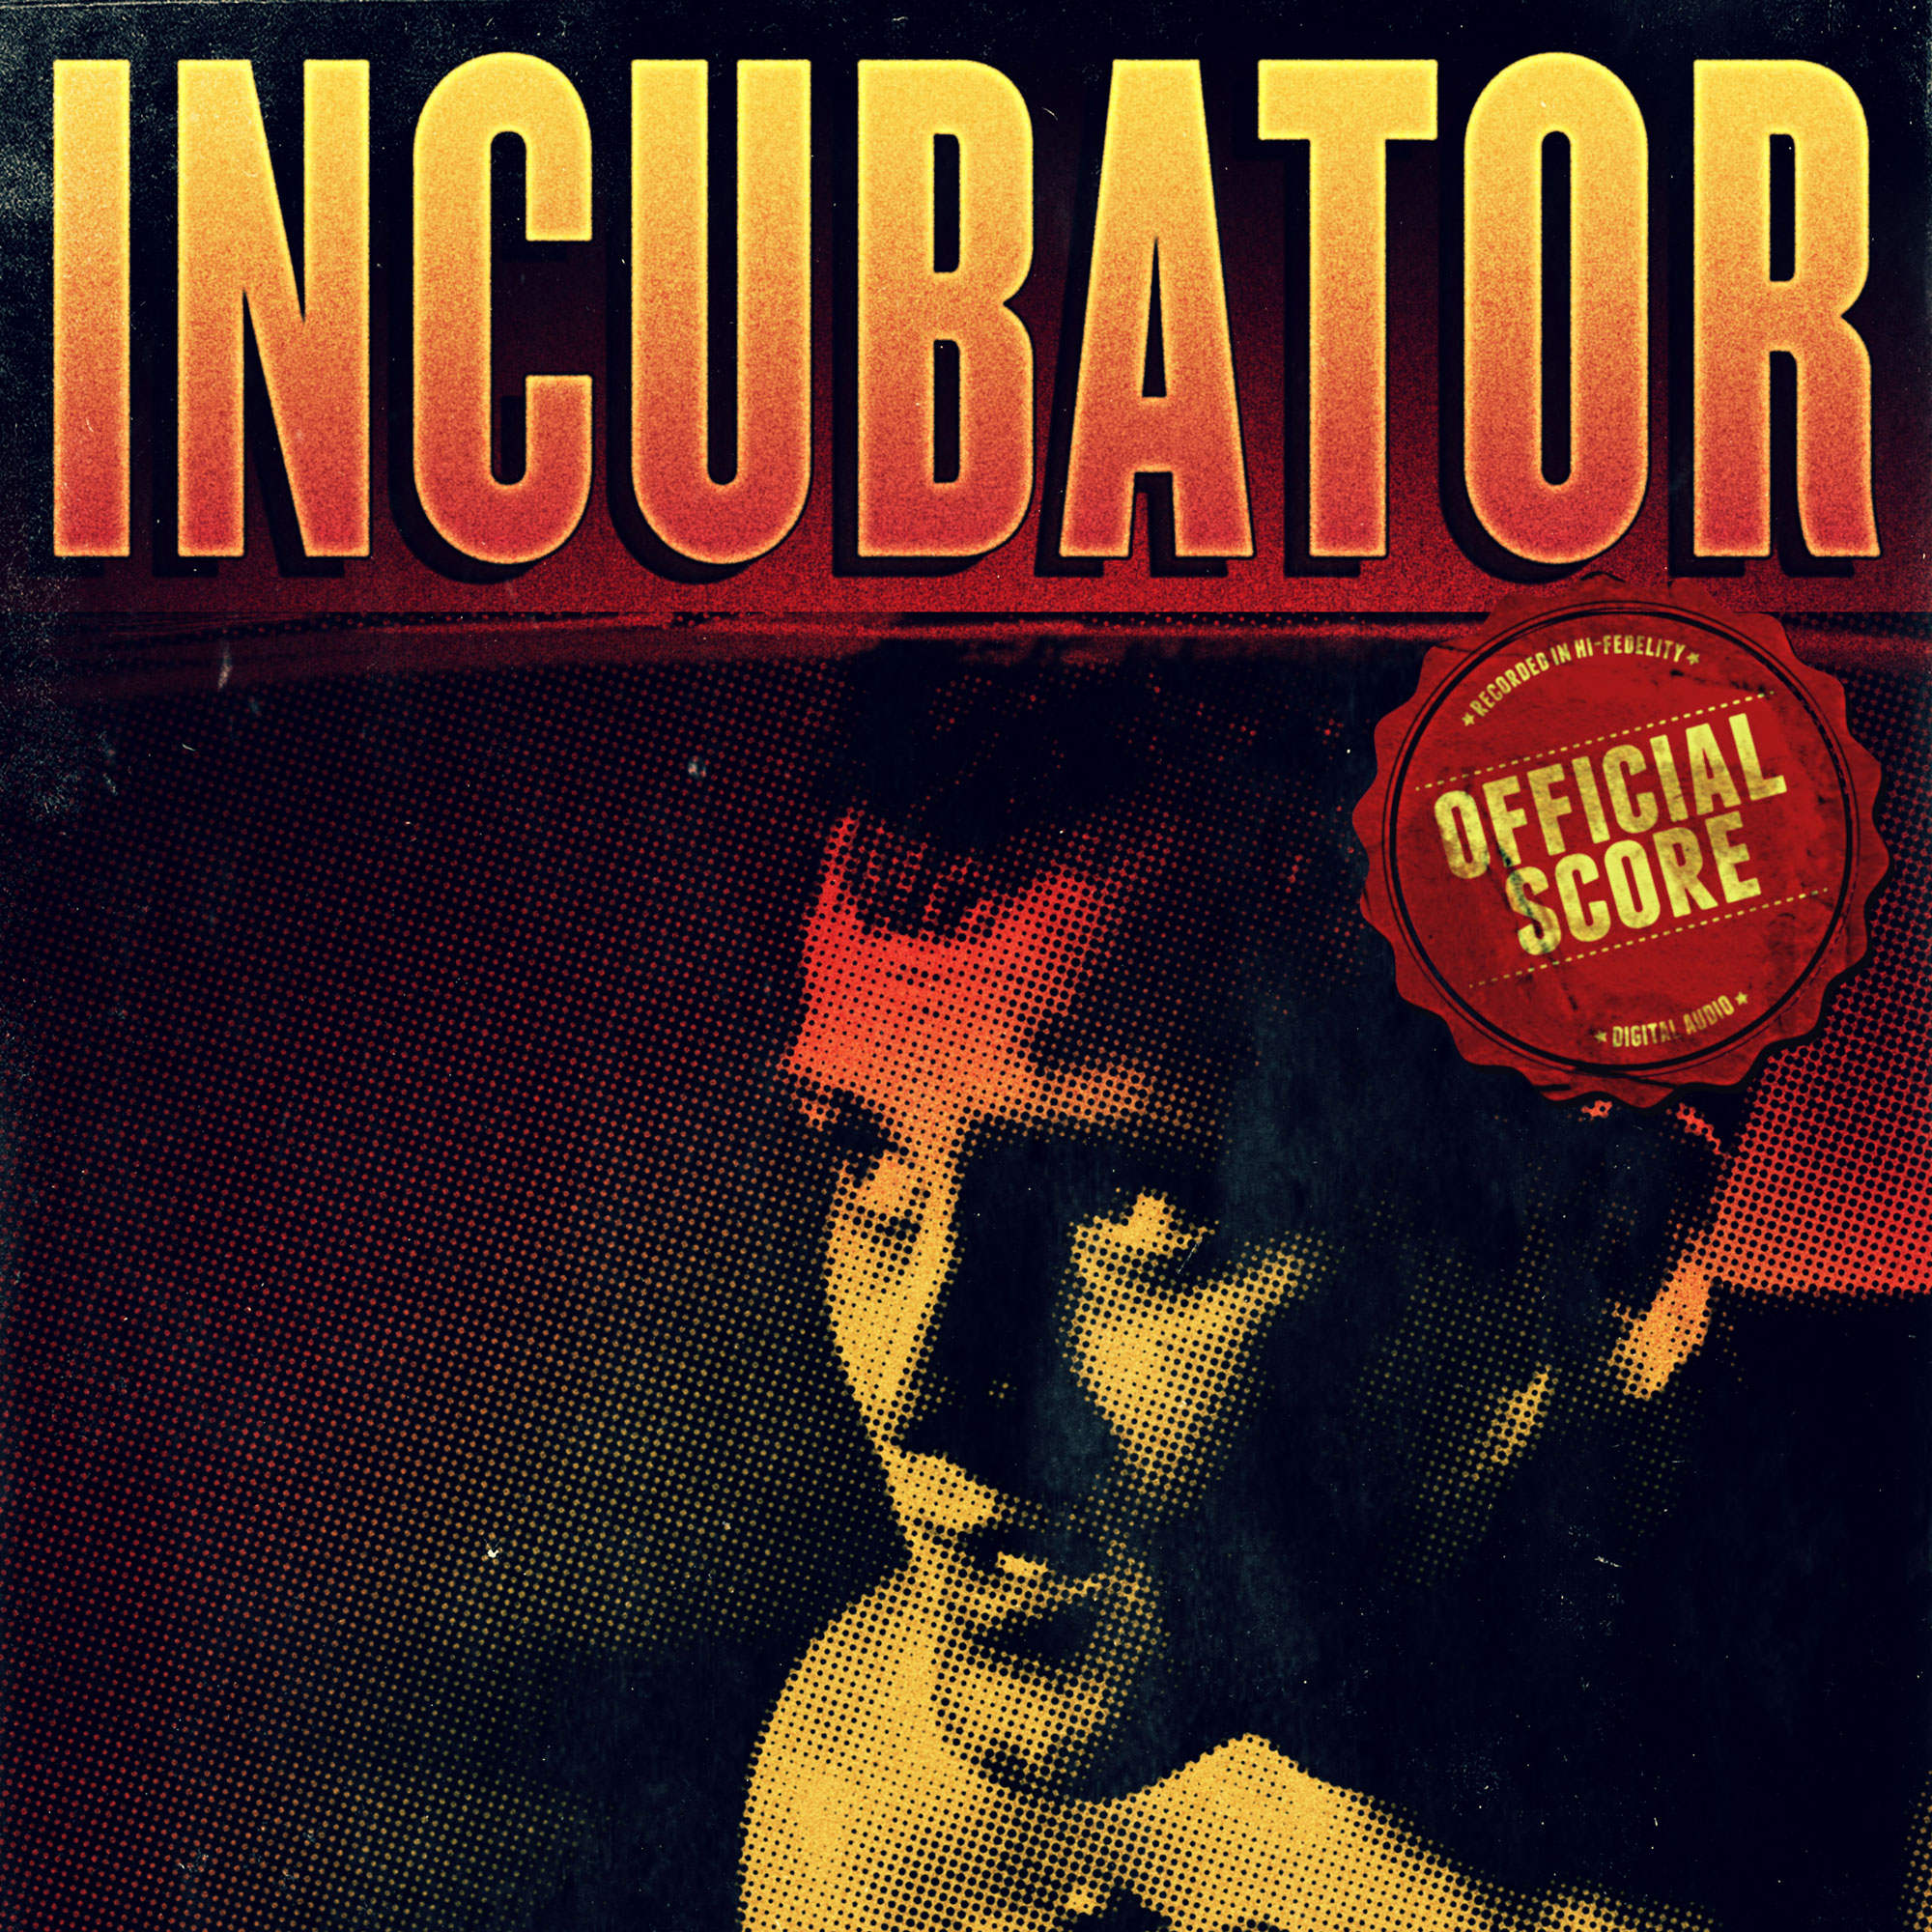 INCUBATOR - Official ScoreI wrote and recorded this track.